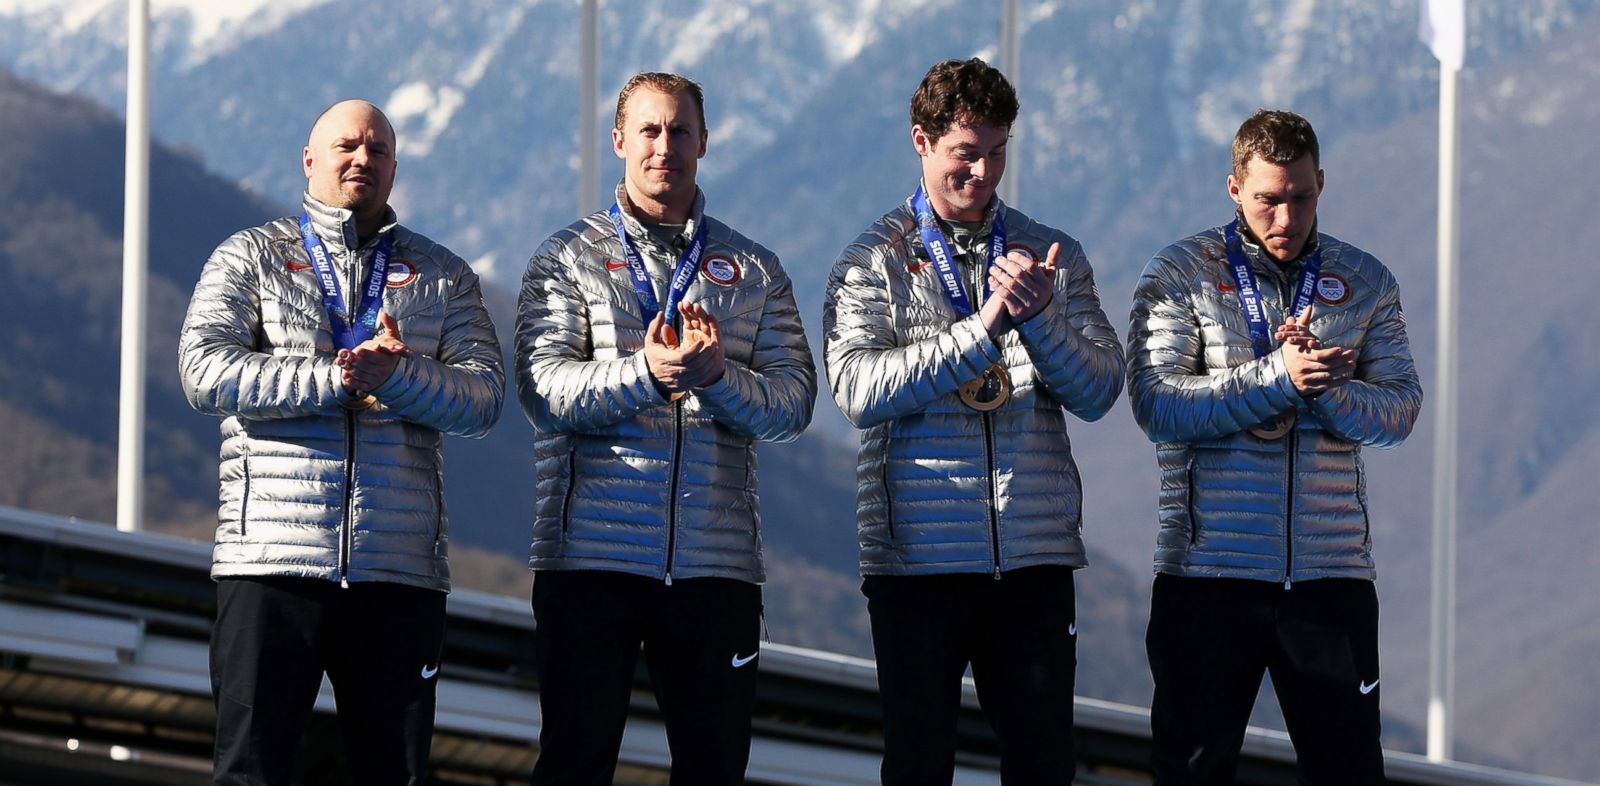 PHOTO: Bronze medalists the United States team 1 celebrate on the podium during the medal ceremony for the four-man bobsleigh on Feb. 23, 2014 during the Sochi 2014 Winter Olympics in Sochi, Russia.